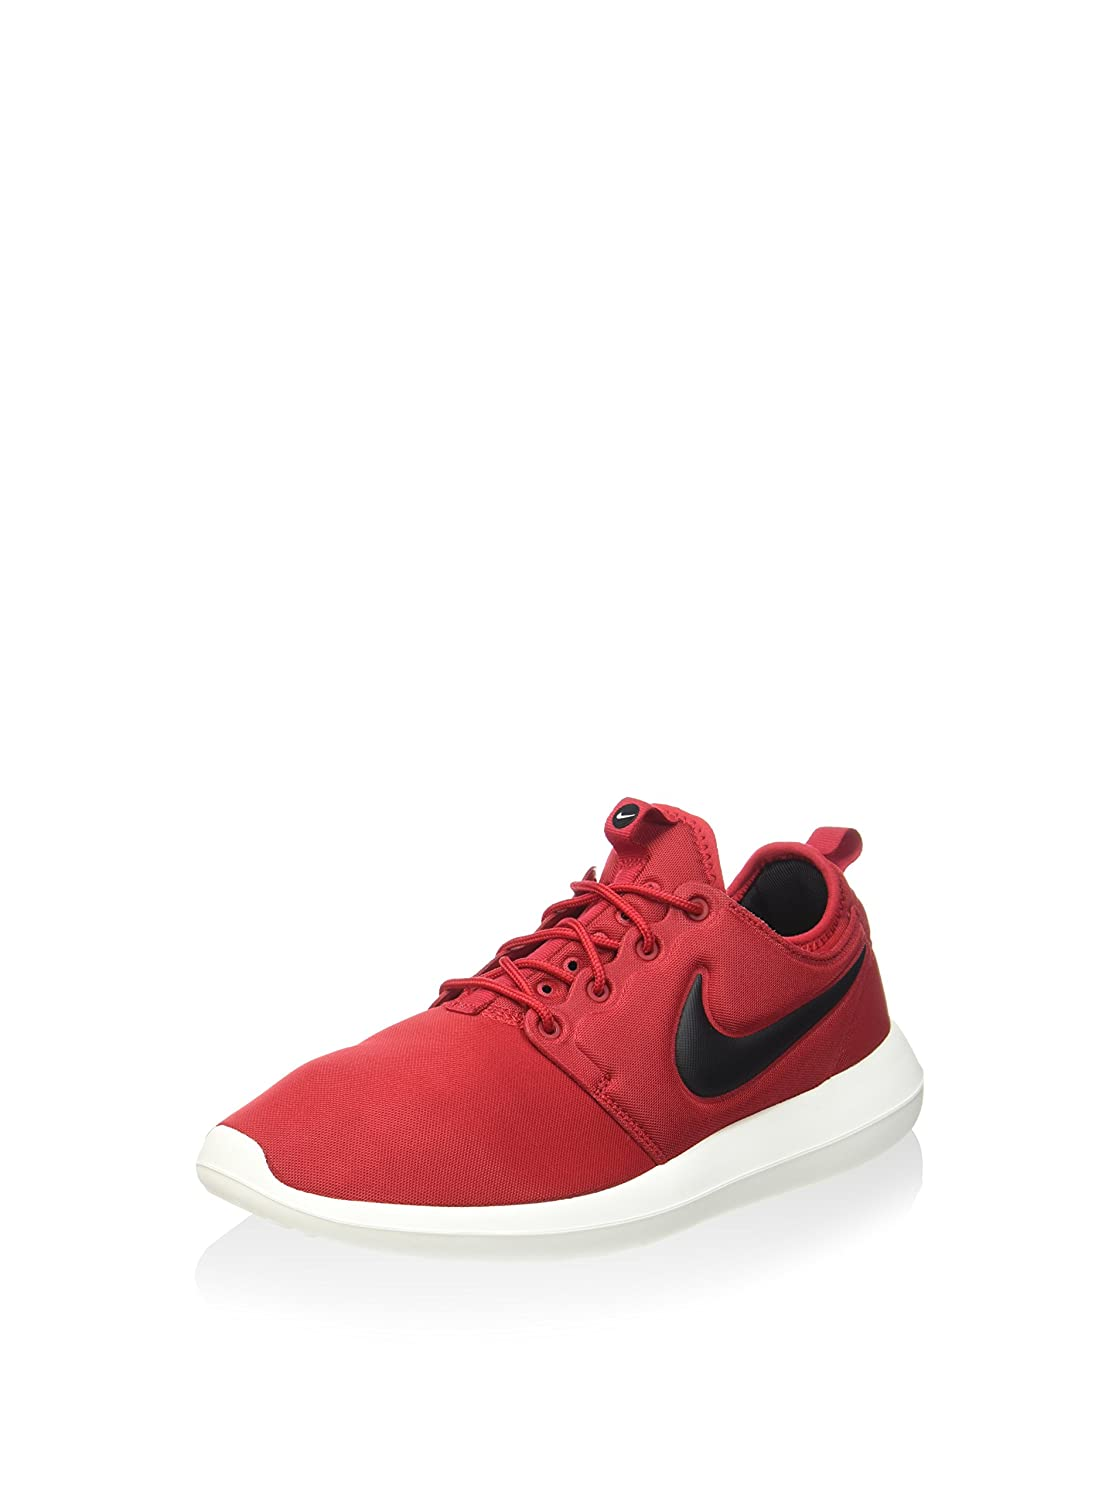 the latest 8de02 77cd3 lovely Nike Roshe Two 2 Men Lifestyle Casual Sneakers New ...